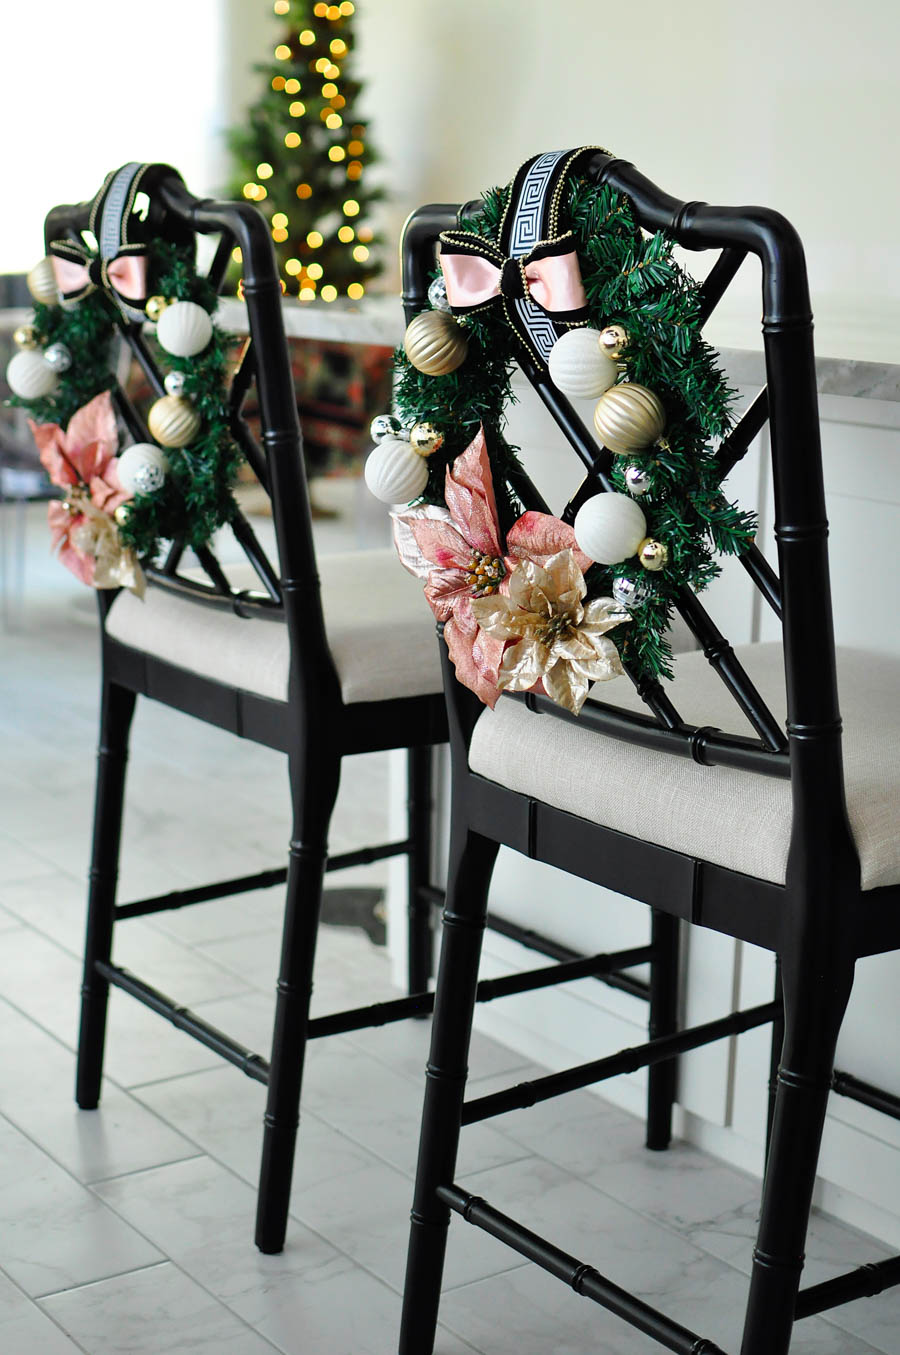 A craft tutorial for a gorgeous and glam blush, white, and gold chair wreath perfect for holiday and Christmas decor in a kitchen or dining room. Love the Greek Key accents!